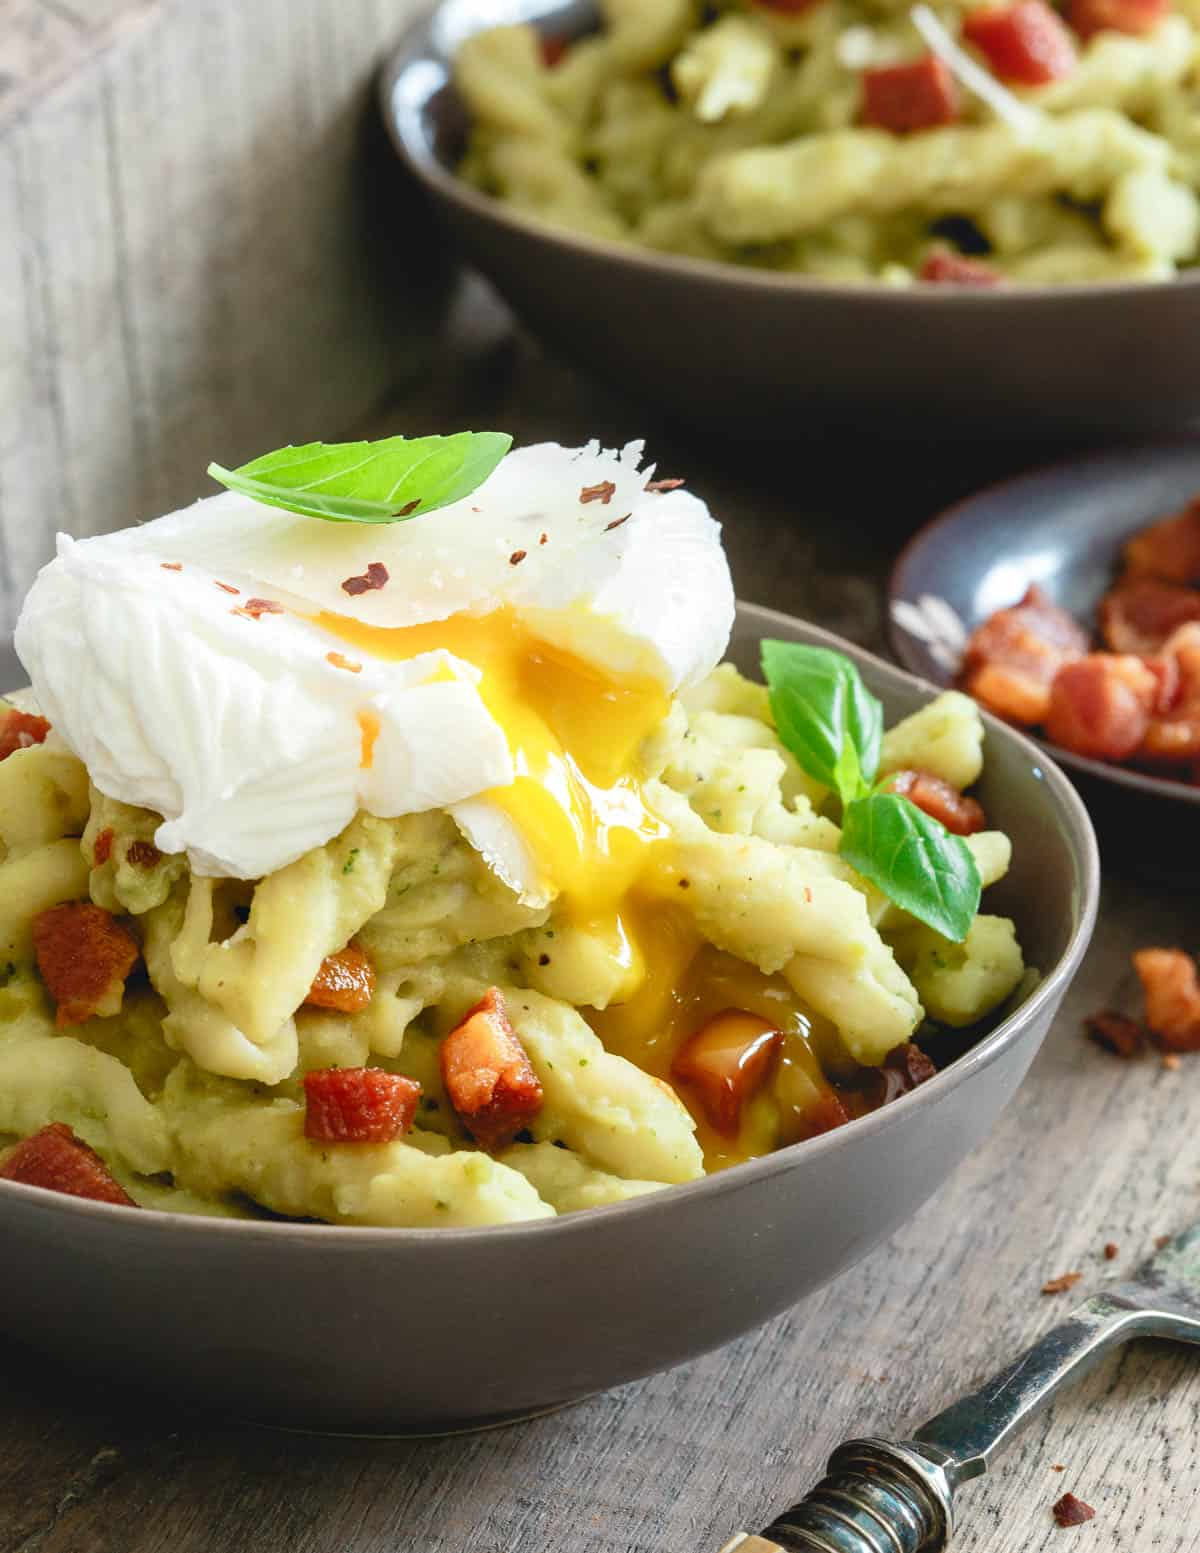 Crispy pancetta, a poached egg and creamy split pea pesto all tossed together with al dente gemelli pasta is pure comfort food.